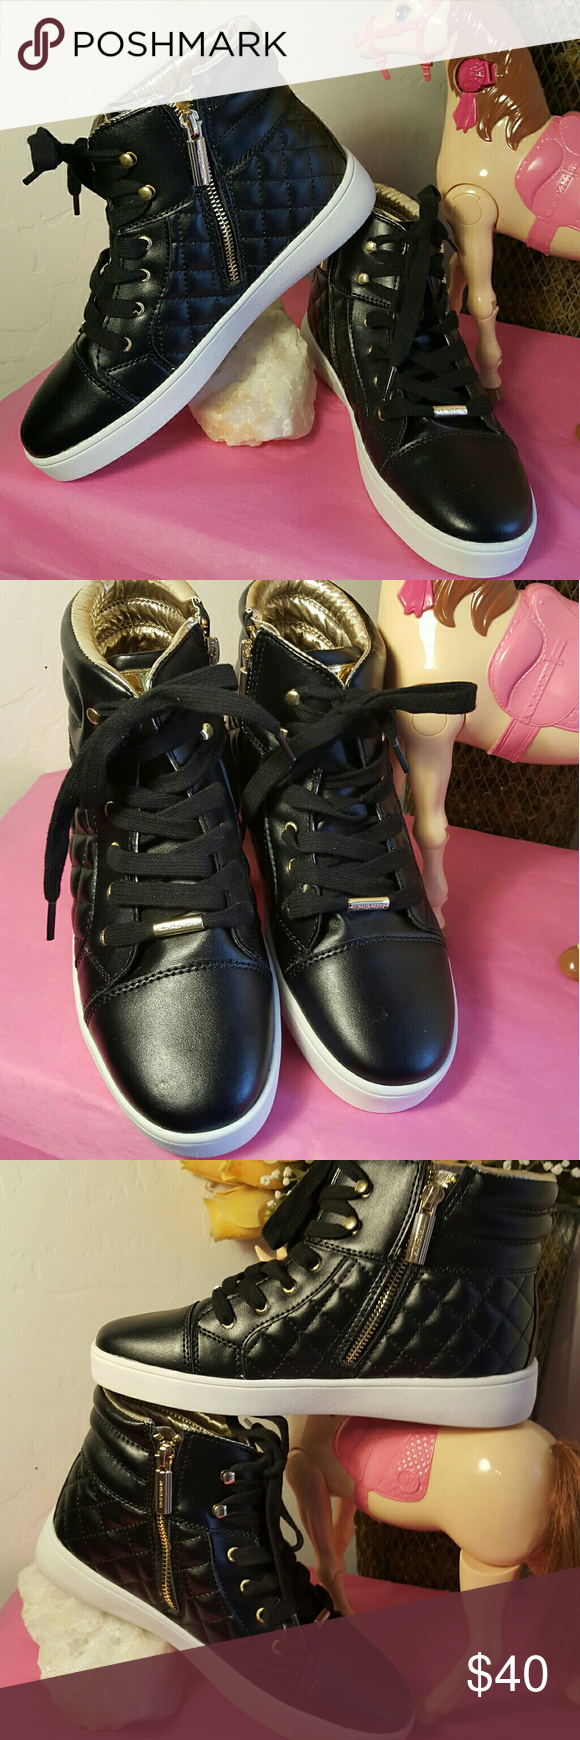 c9b8b4365ee Girls Michael Kors High top shoes NWOT These are beautiful Michael Kors Ivy  Casey style black